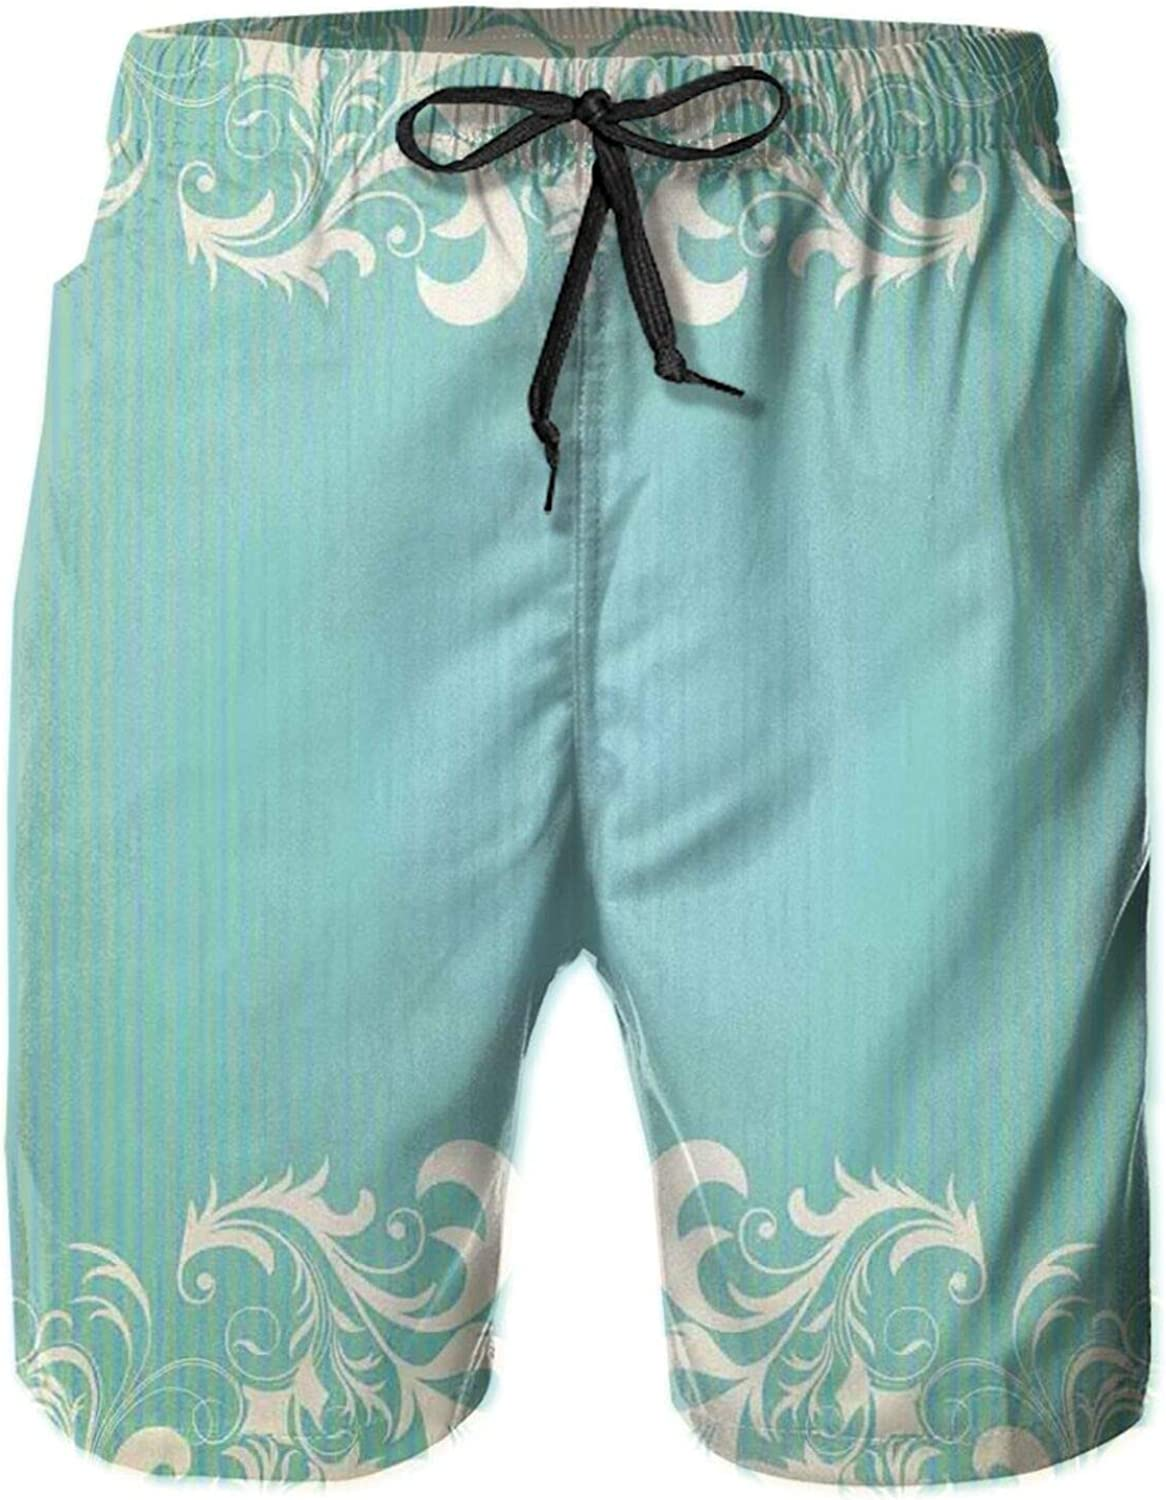 Old Fashioned Frame with Grungy Ancient Floral Curlicues Baroque Revival Motifs Drawstring Waist Beach Shorts for Men Swim Trucks Board Shorts with Mesh Lining,XXL